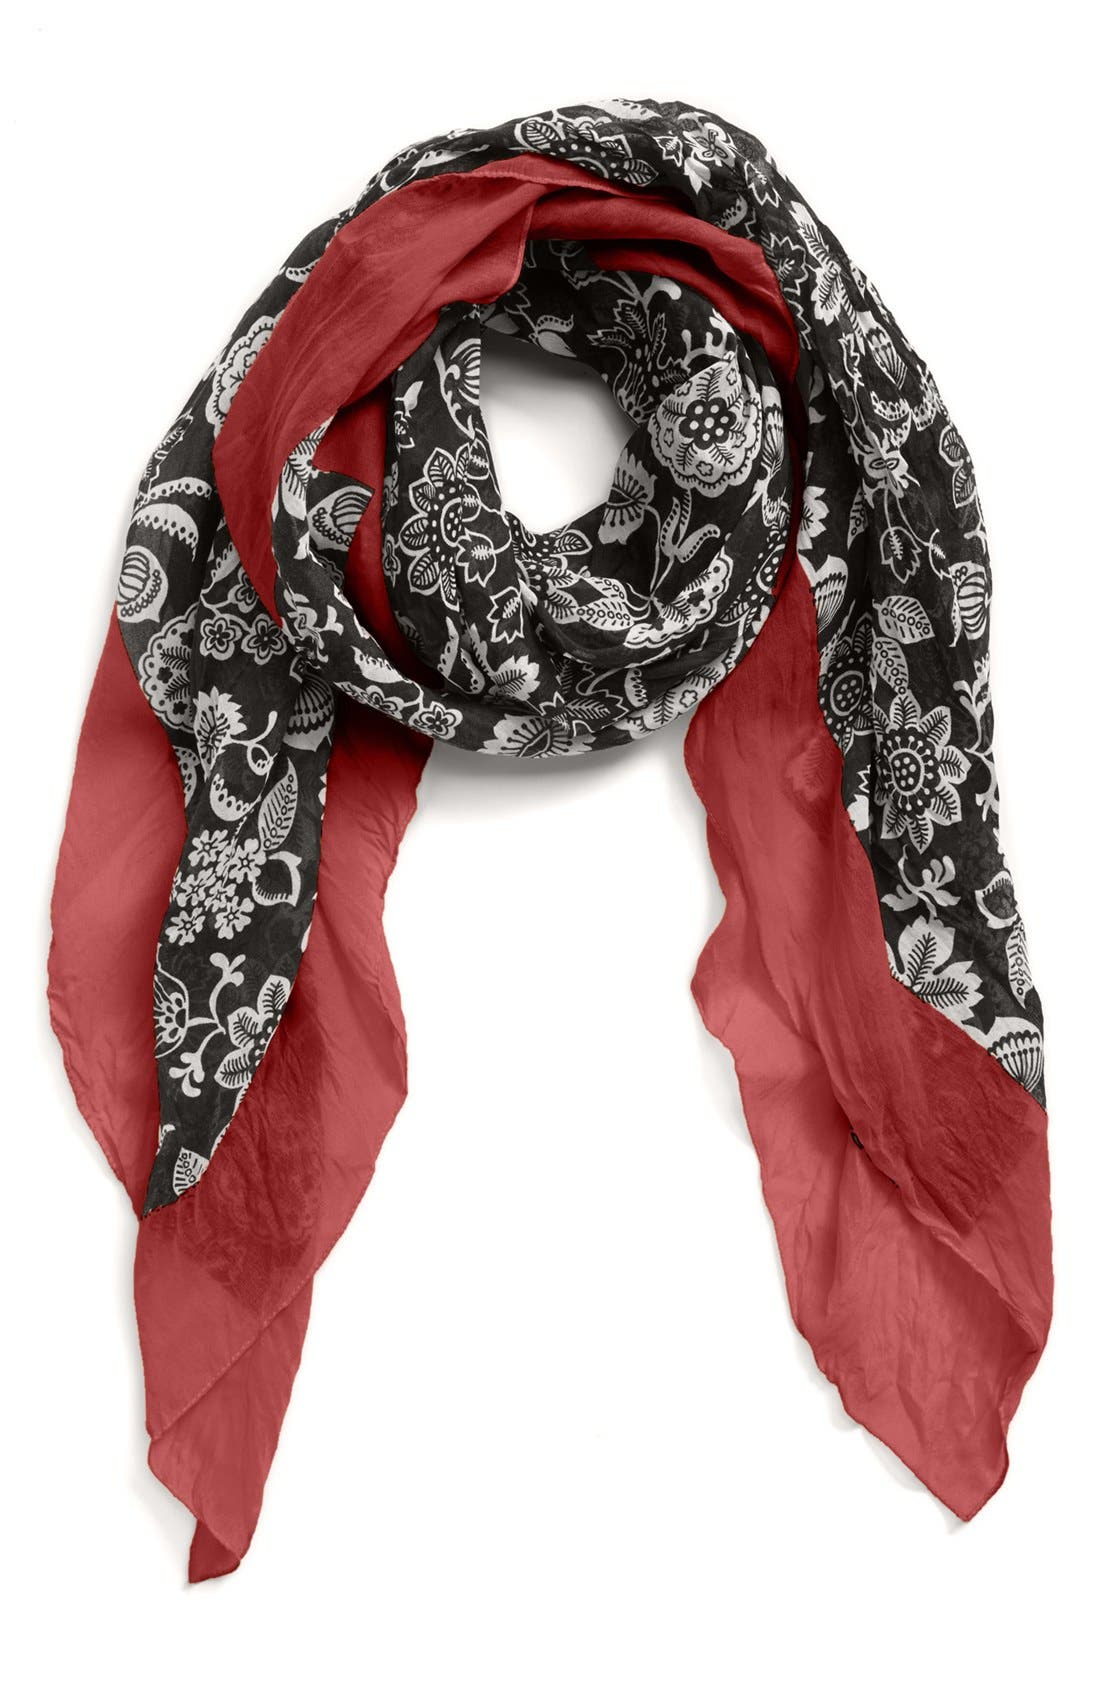 Main Image - Nordstrom 'Gypsy Floral' Square Scarf